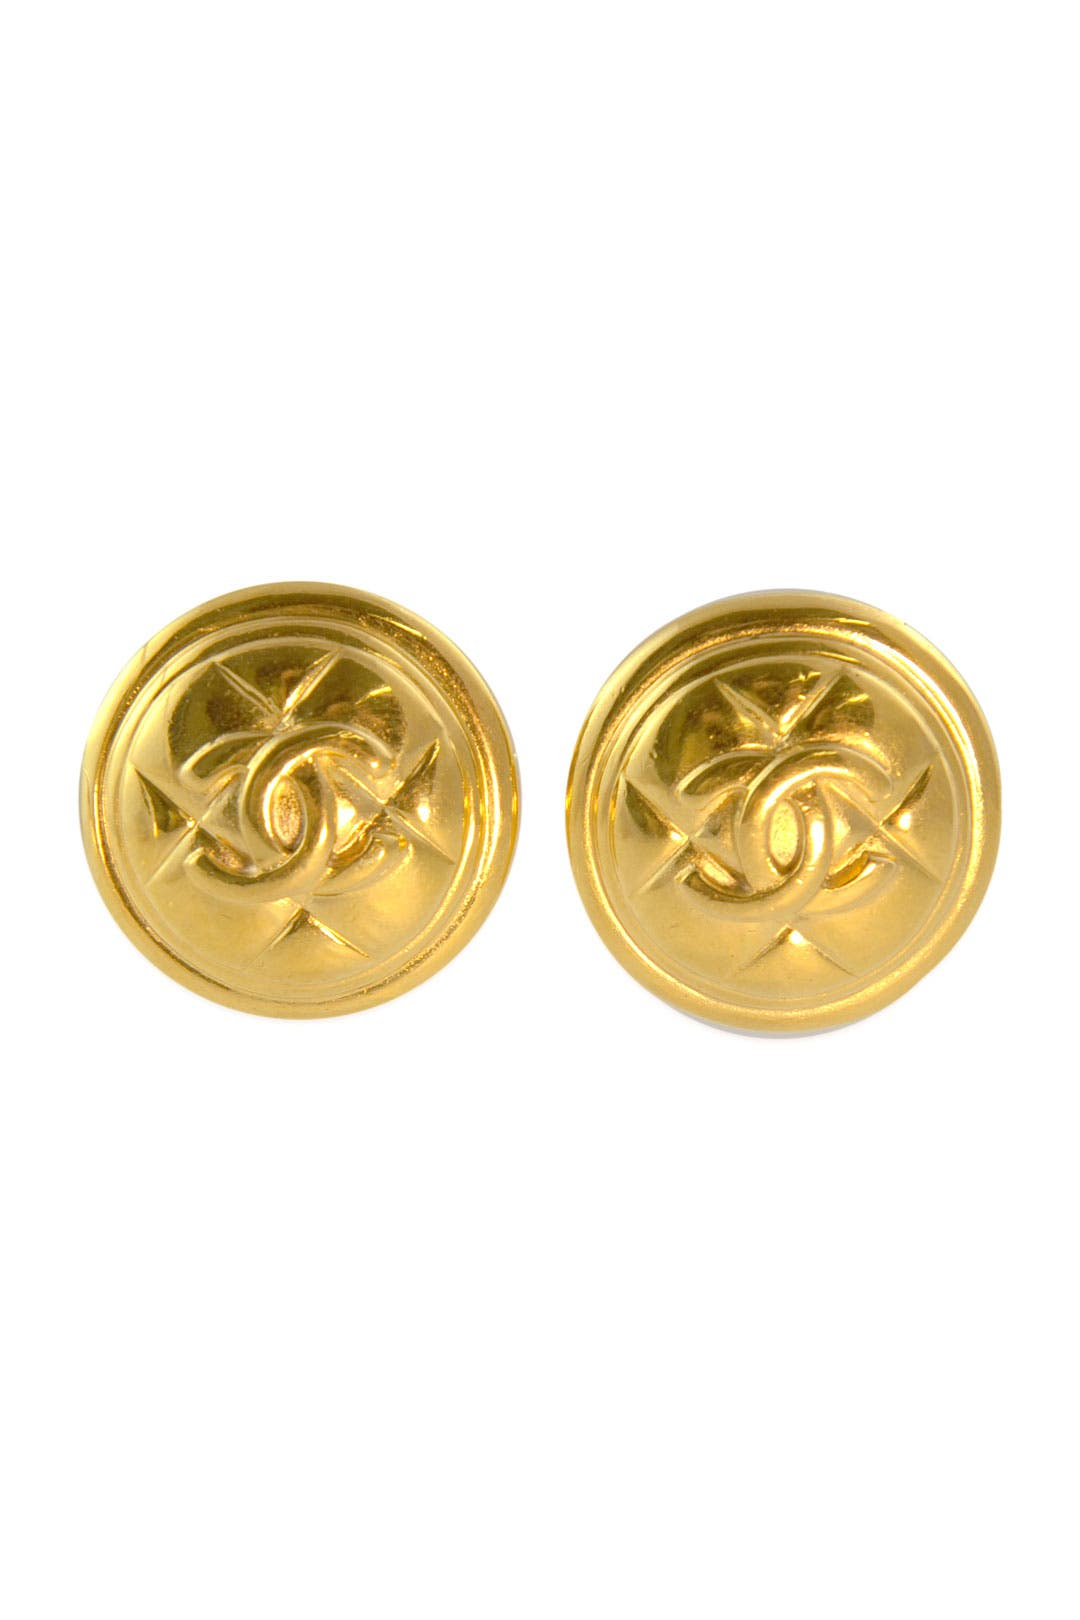 Vintage Chanel Quilted Shield Earrings by WGACA Vintage